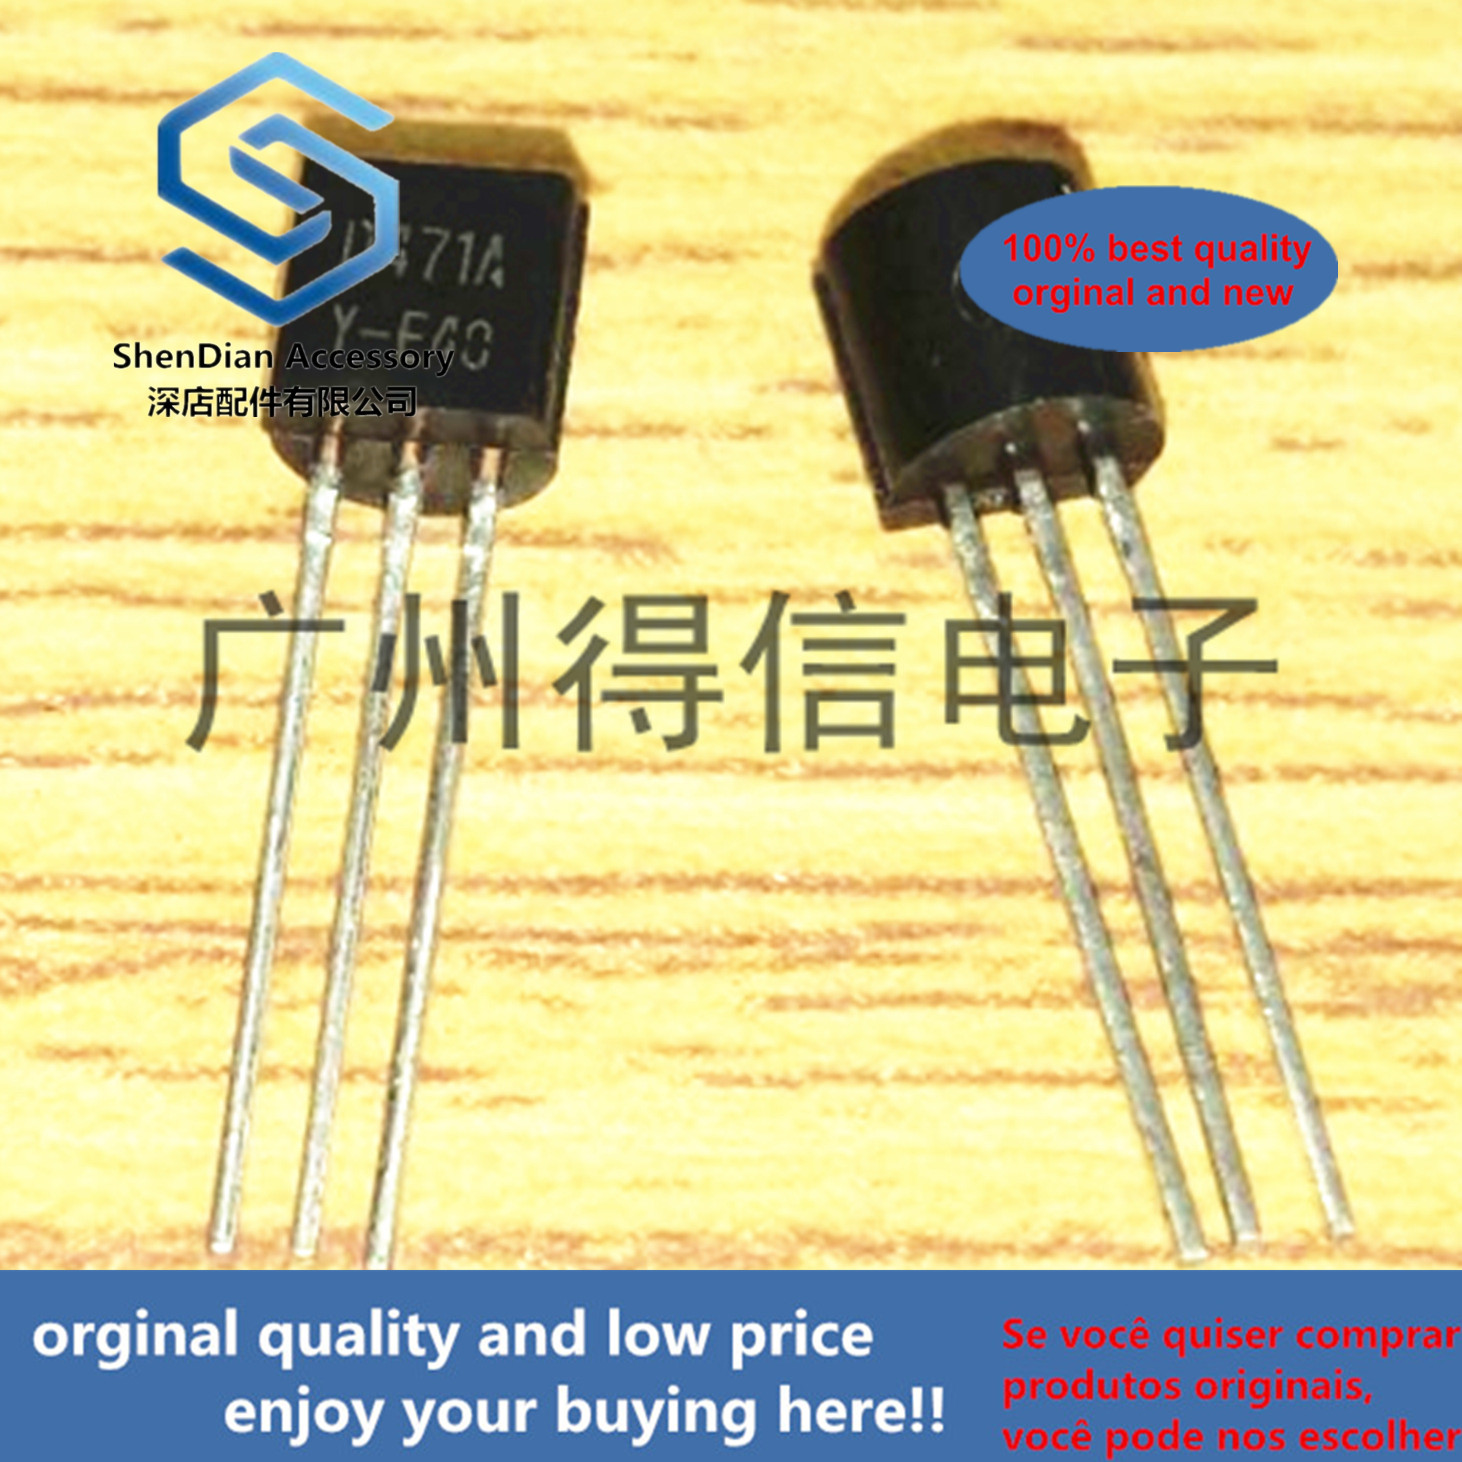 30pcs 100% Orginal New KSD471A D471A 471 TO-92 TO-92 Audio Frequency Power Amplifier  Real Photo